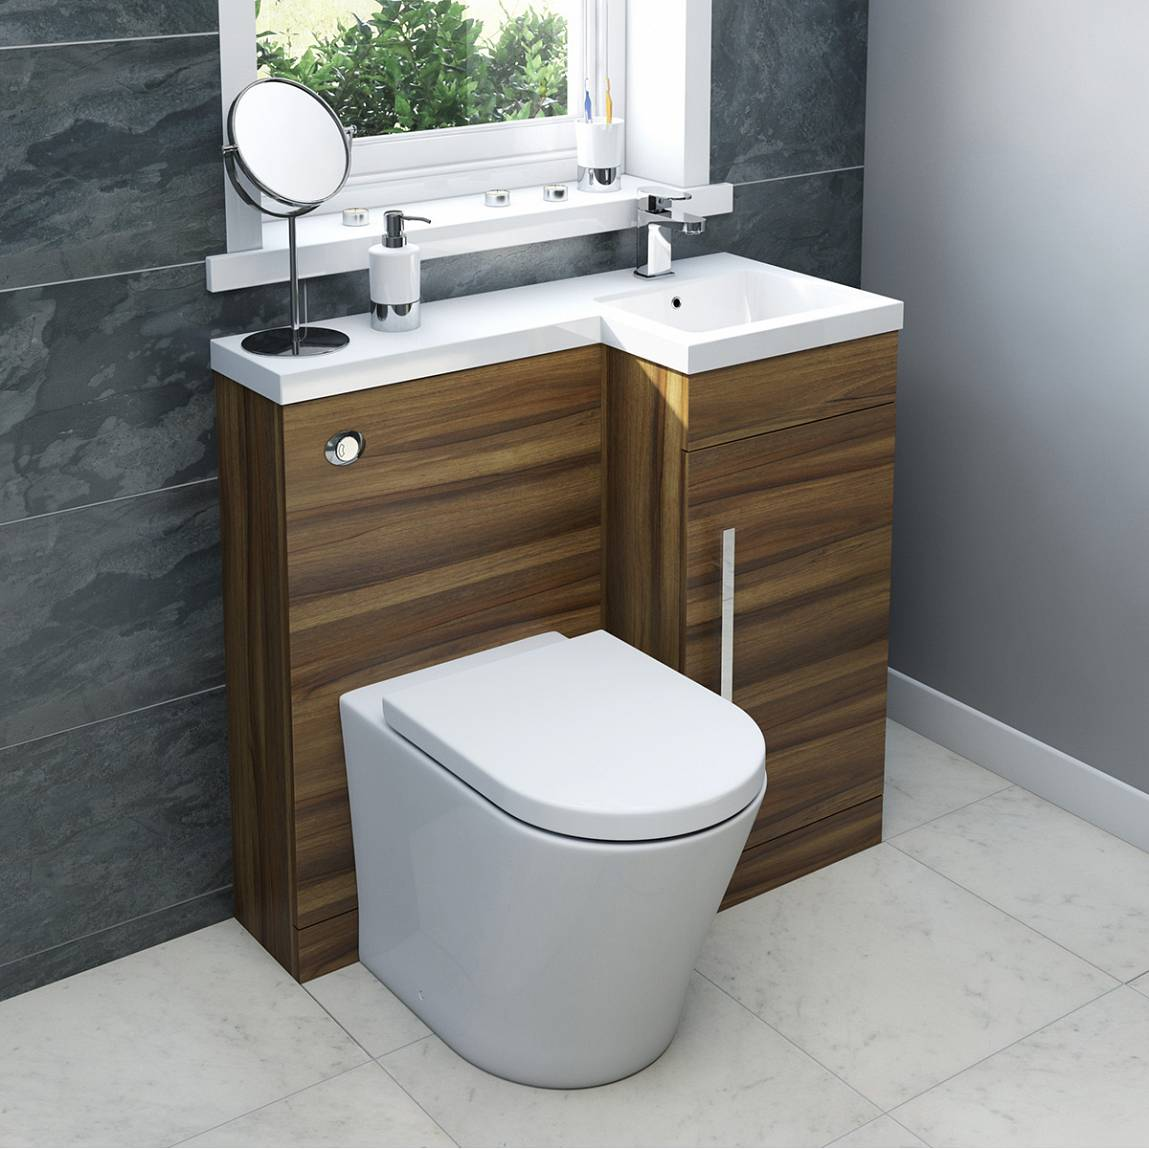 Myspace walnut right handed unit with Arte back to wall toilet. Small Bathroom  Style it your way with MySpace Furniture